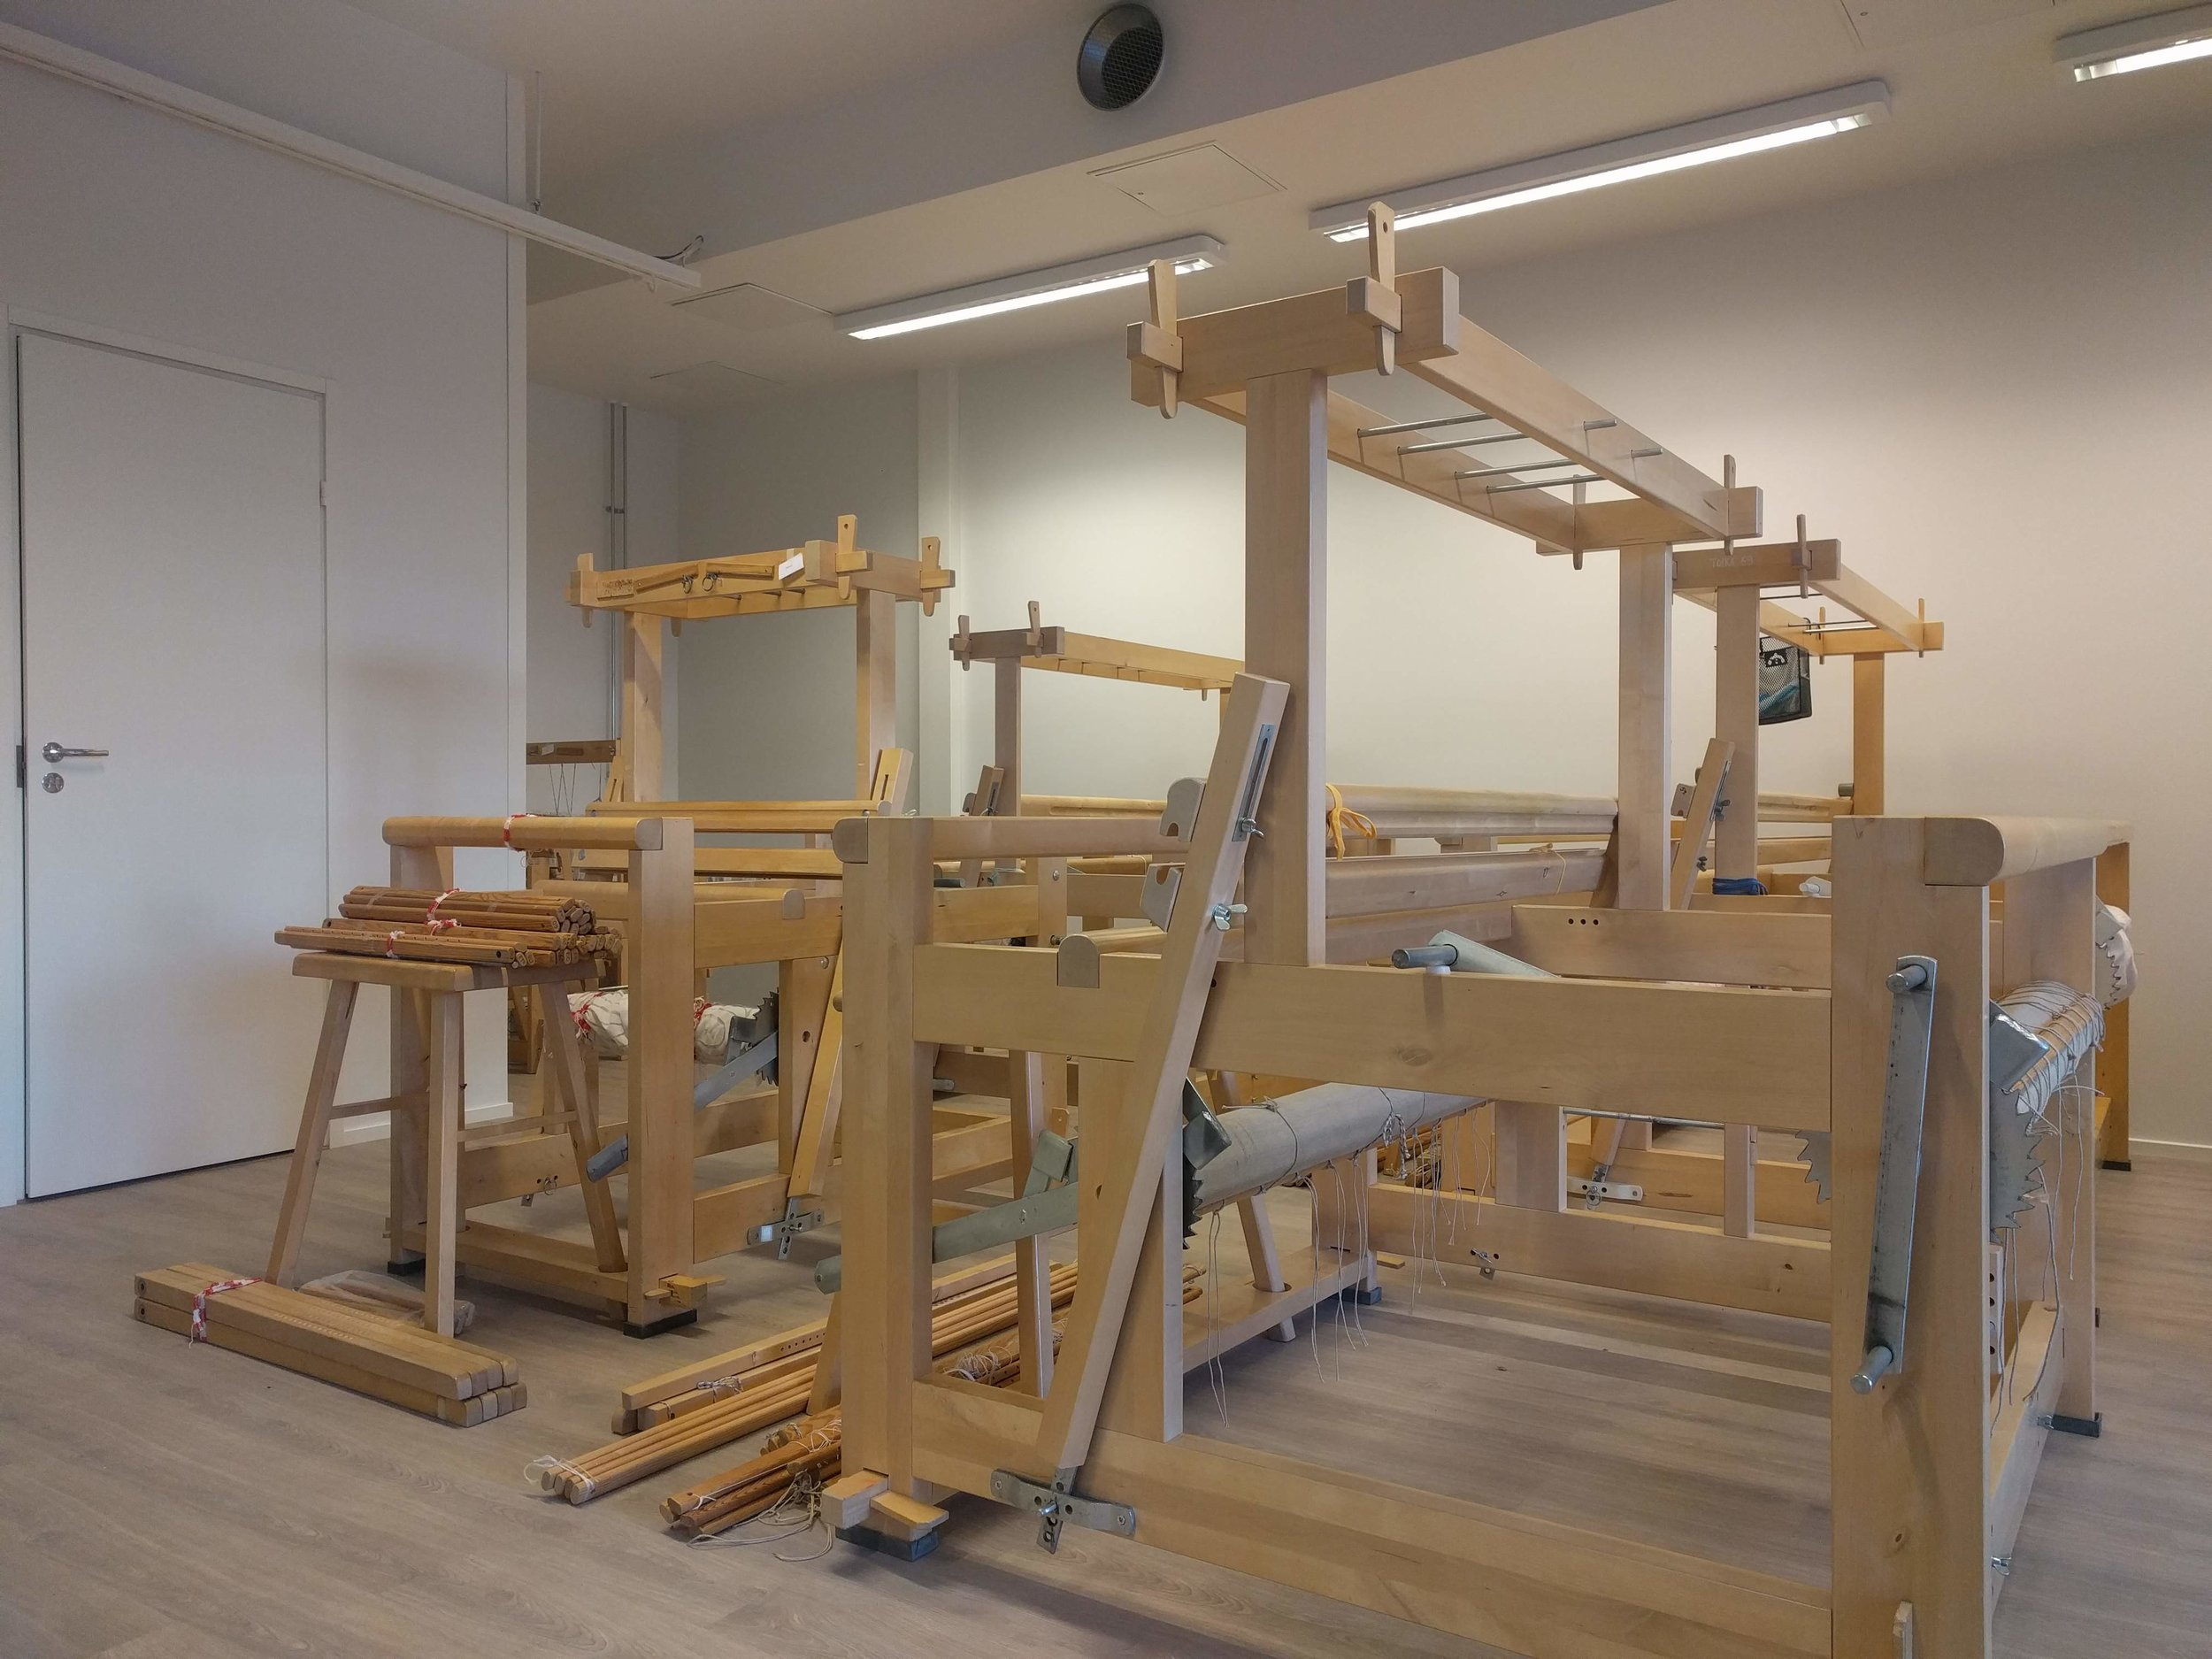 These are some of the floor looms in the studio. Most of them are countermarch looms from the Finnish brand Toika.